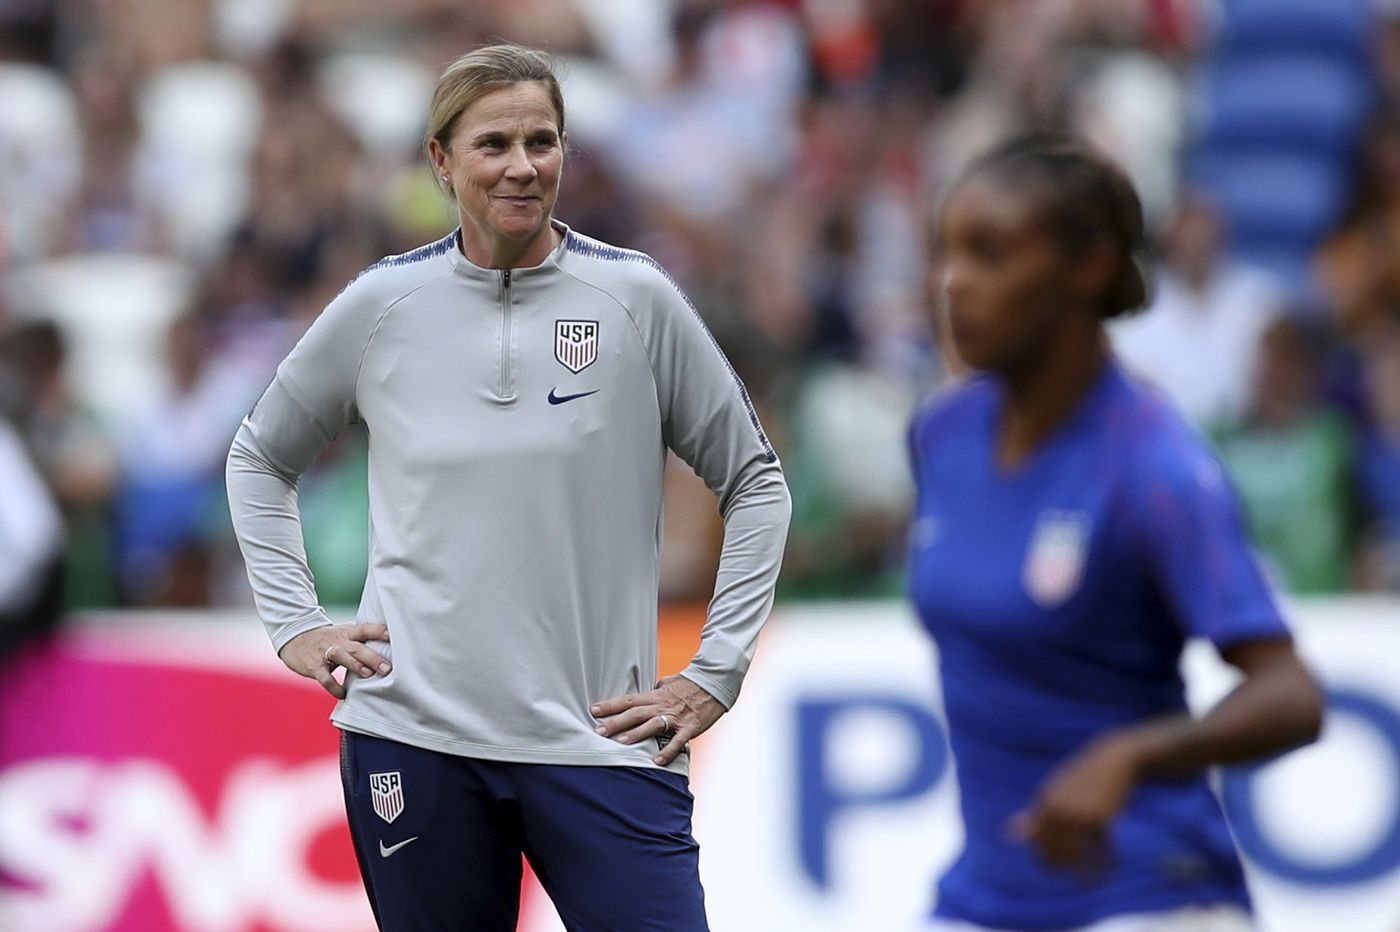 Jill Ellis on final game as USWNT coach: 'I feel complete'